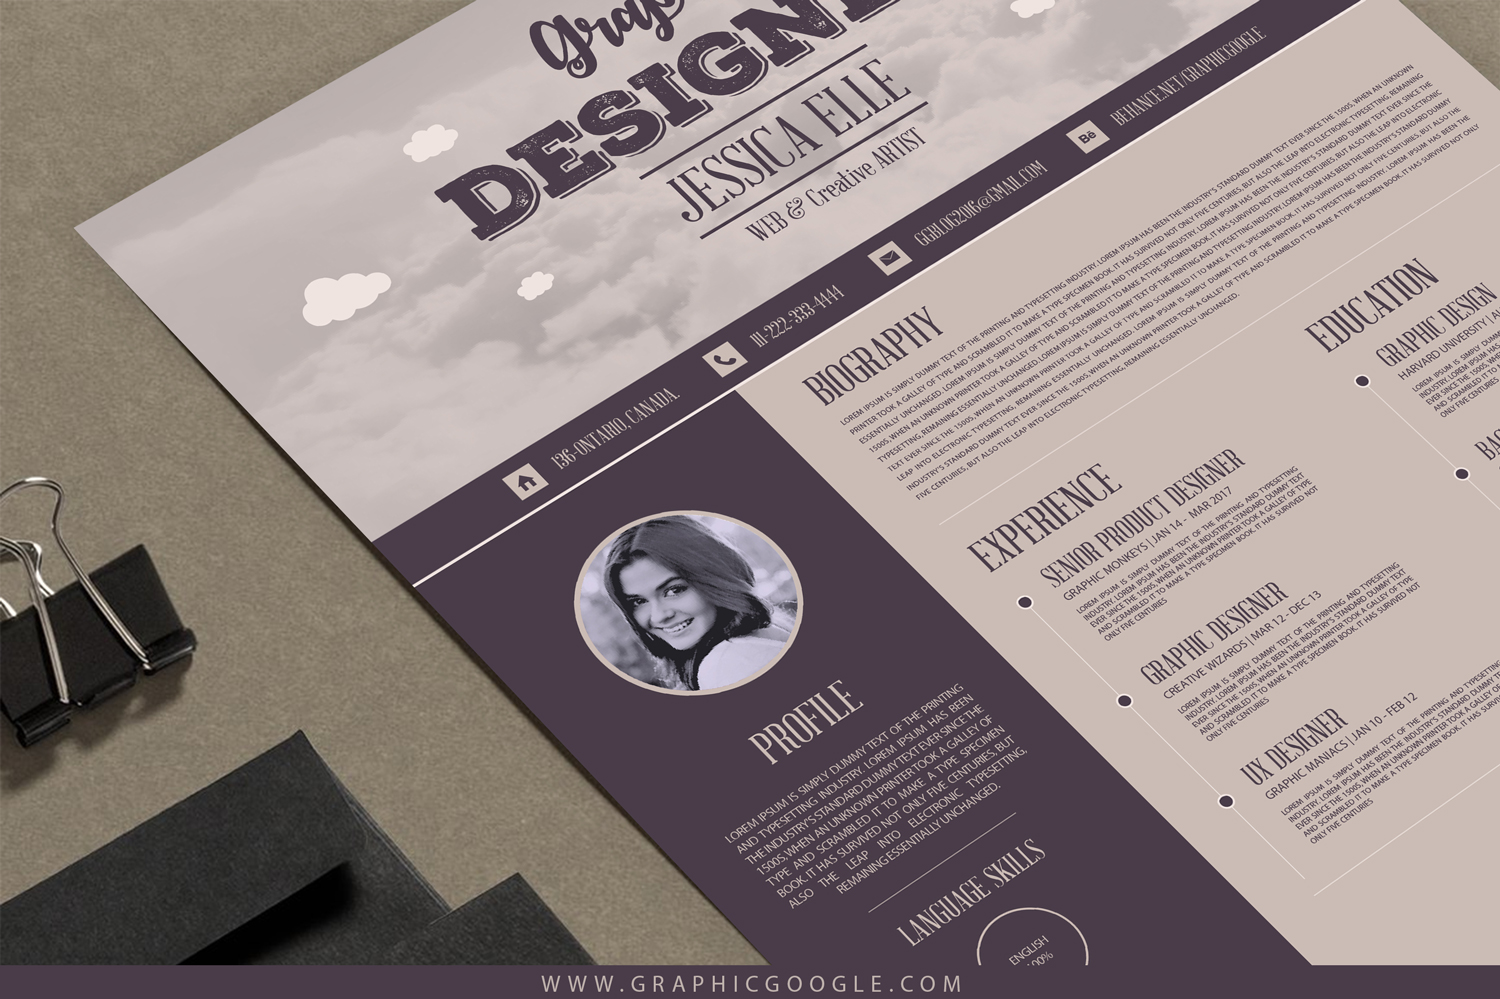 free creative vintage resume design template for designersgraphic google  u2013 tasty graphic designs